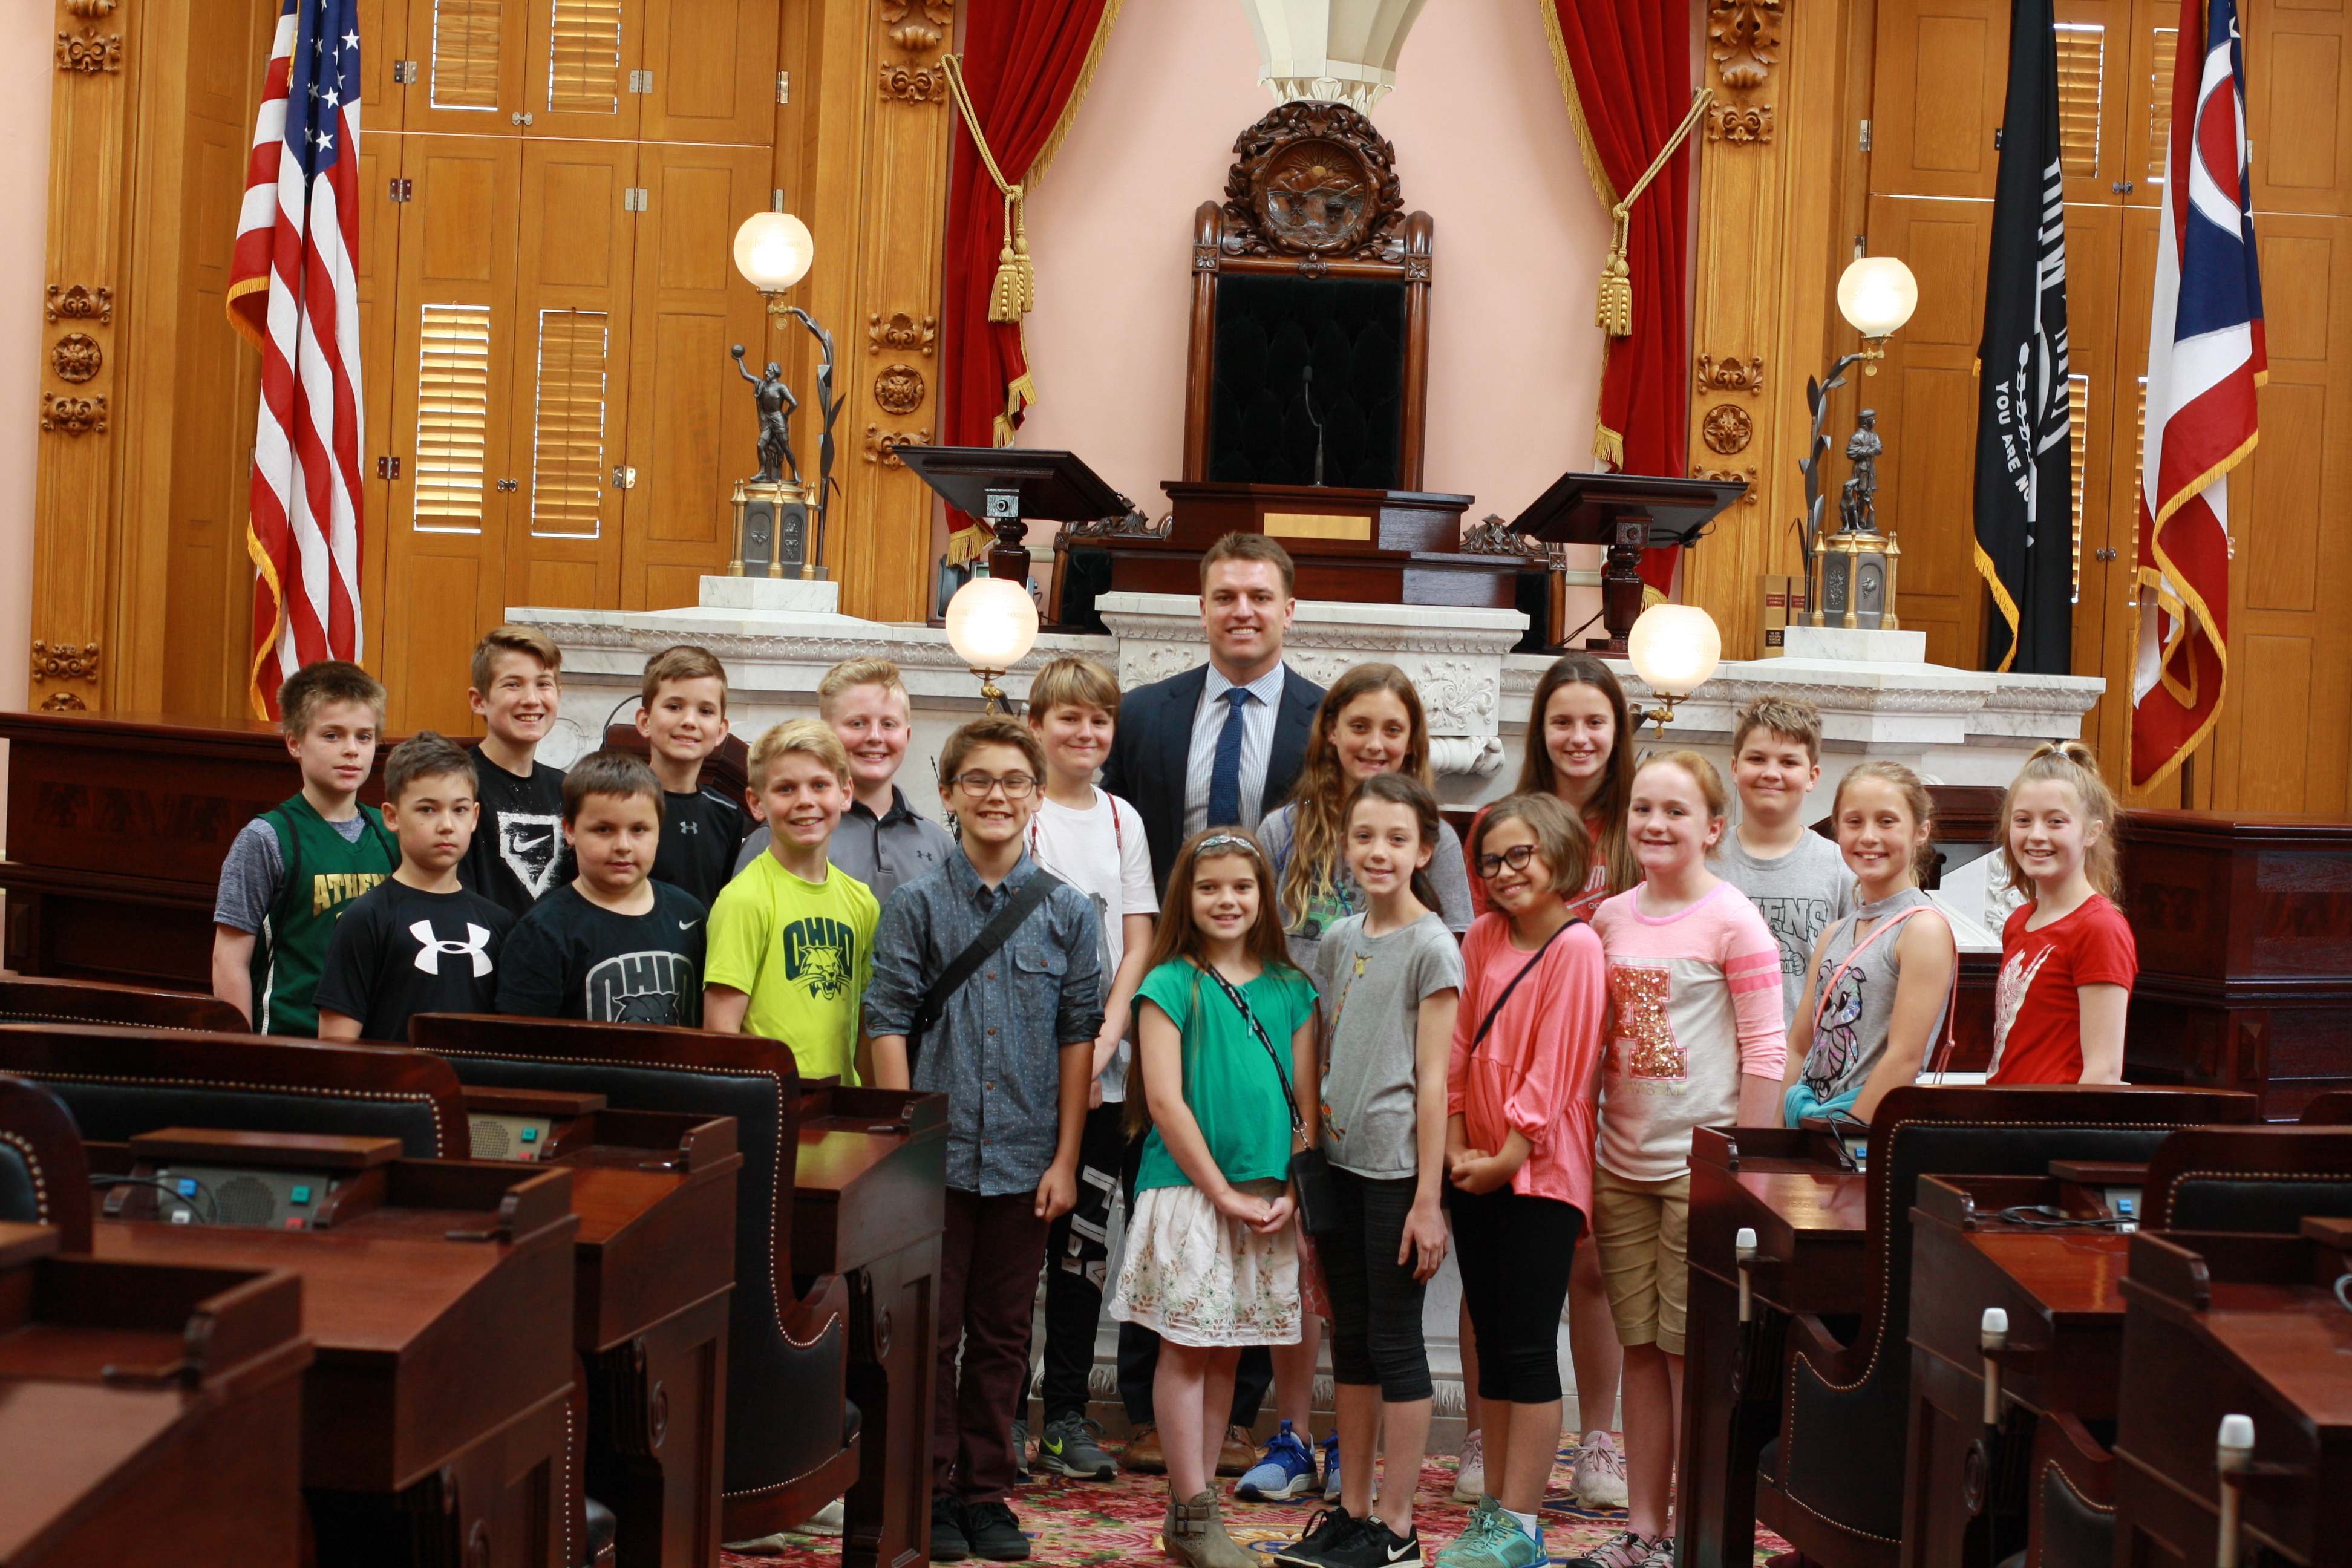 MoGo Student Council meets with Representative Edwards at Ohio Statehouse